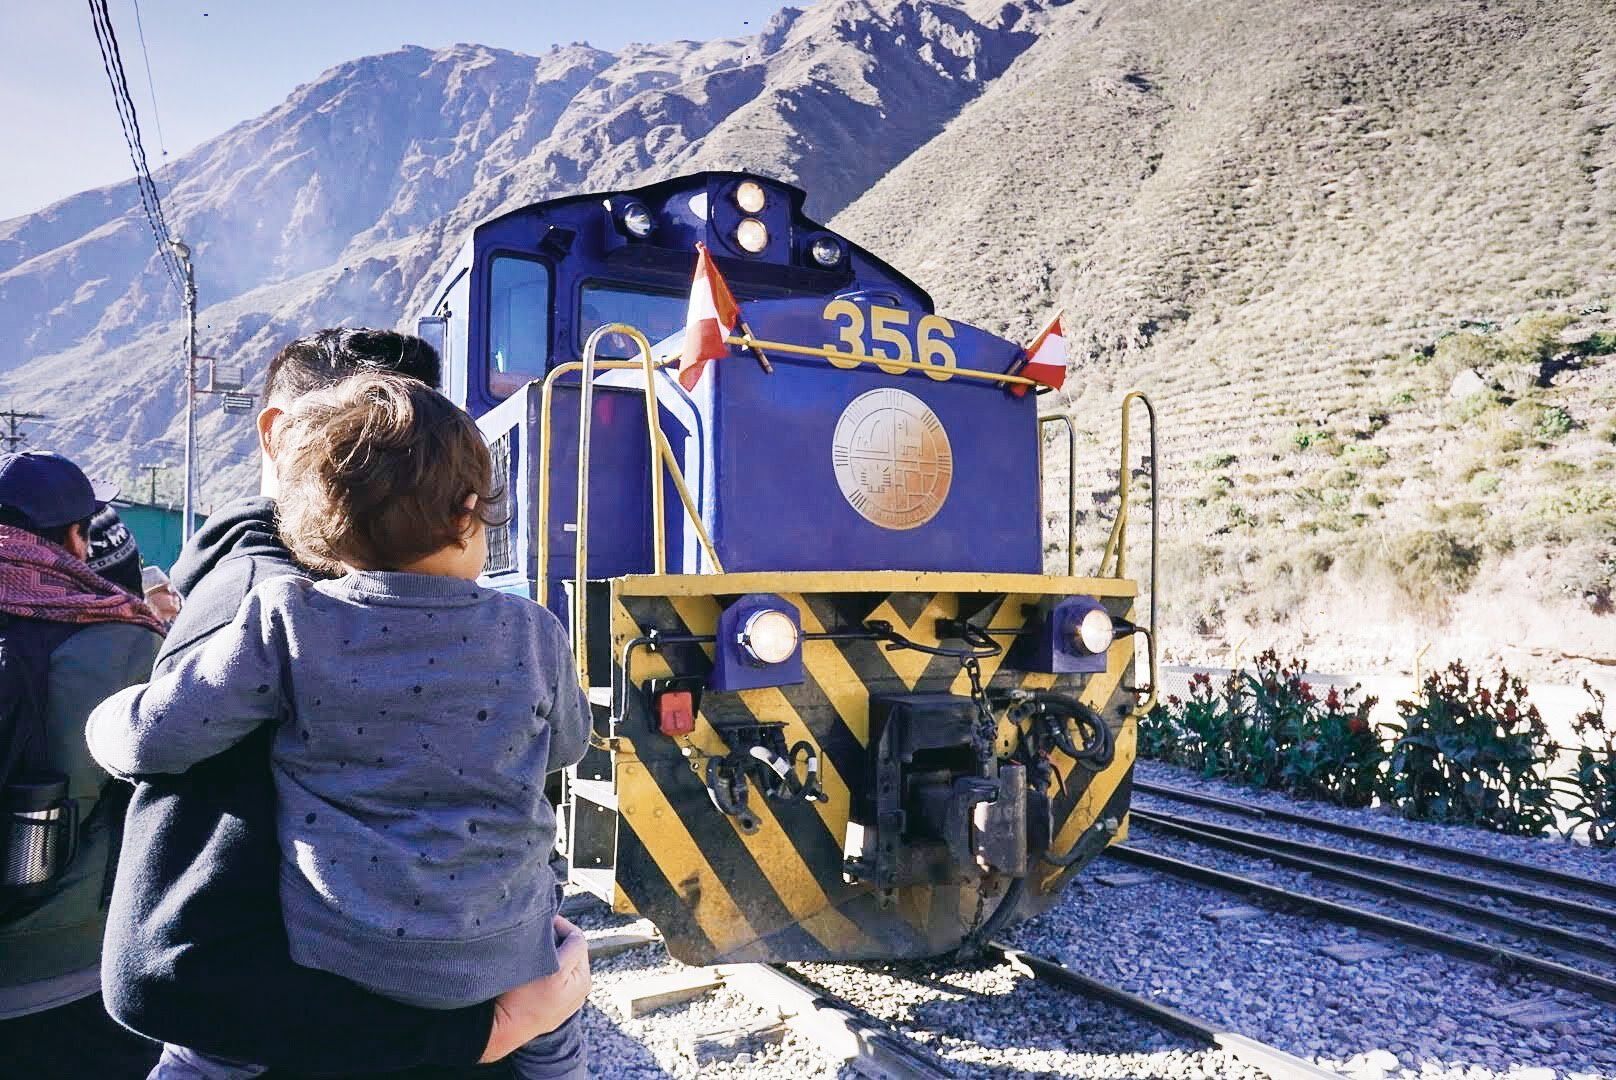 Elden (2.5 years old) checking out the PeruRail trains